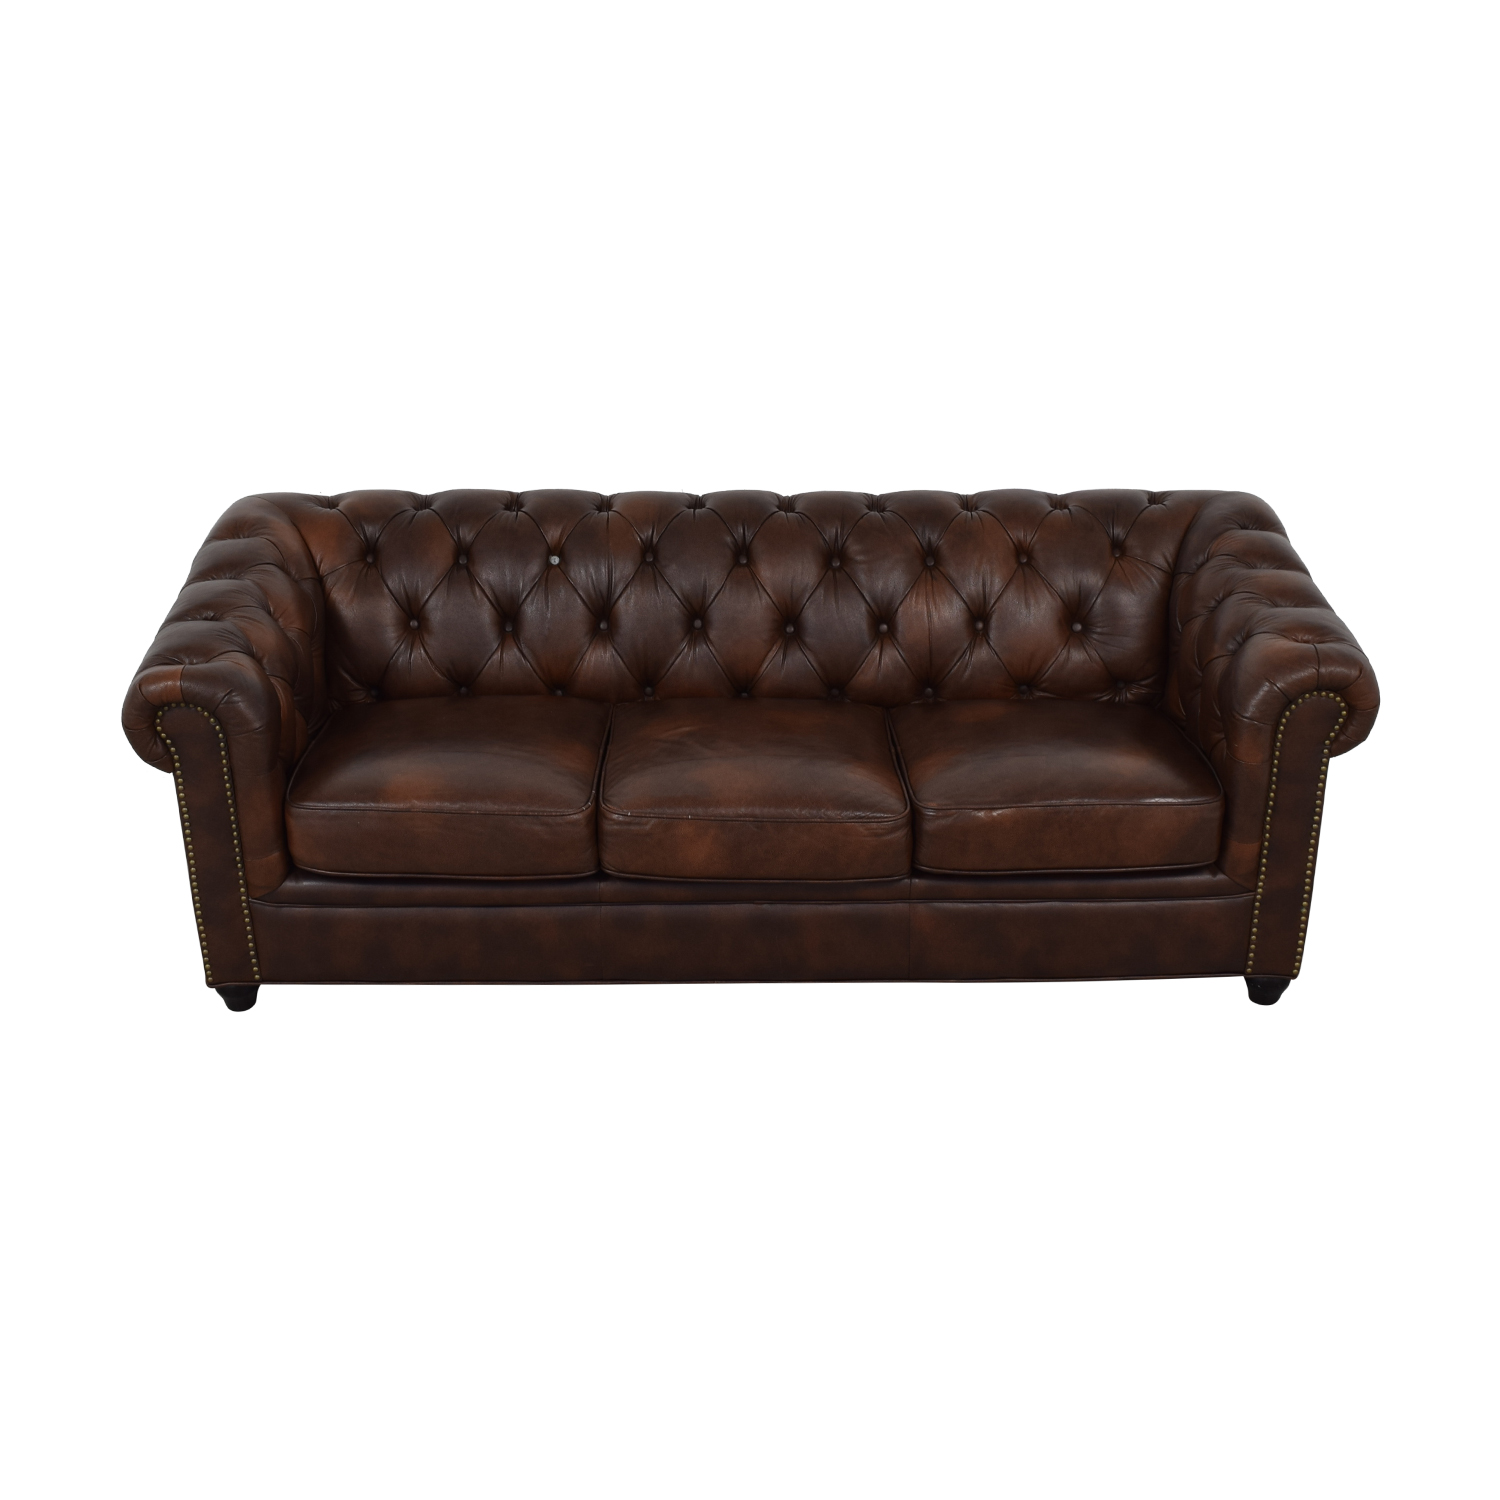 shop Abbyson Living Brown Tufted Three-Cushion Sofa Abbyson Living Sofas